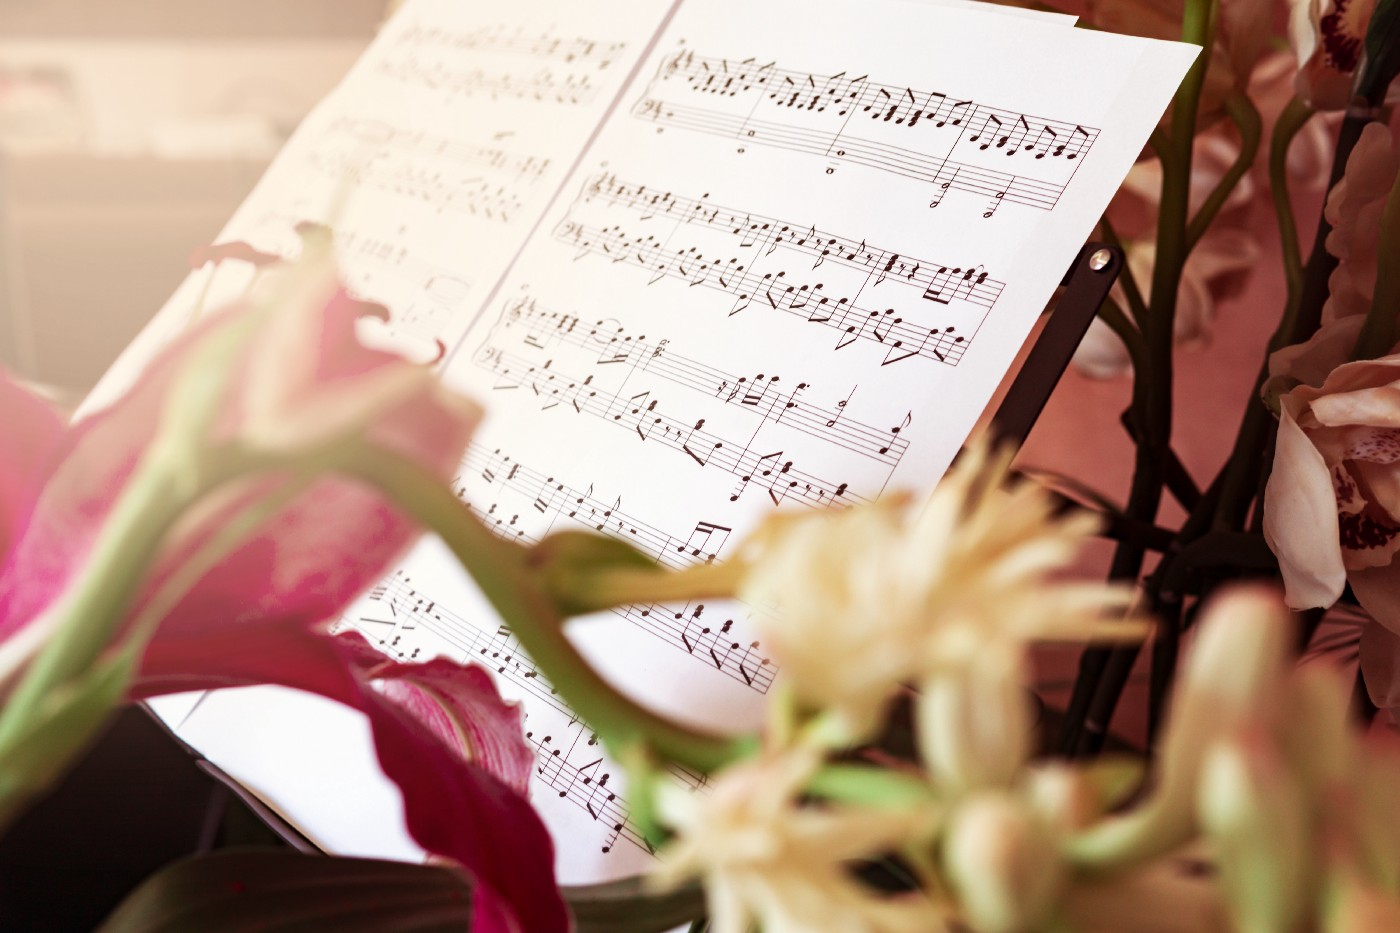 A piece of sheet music on a wire music stand with some tulips in the foreground.